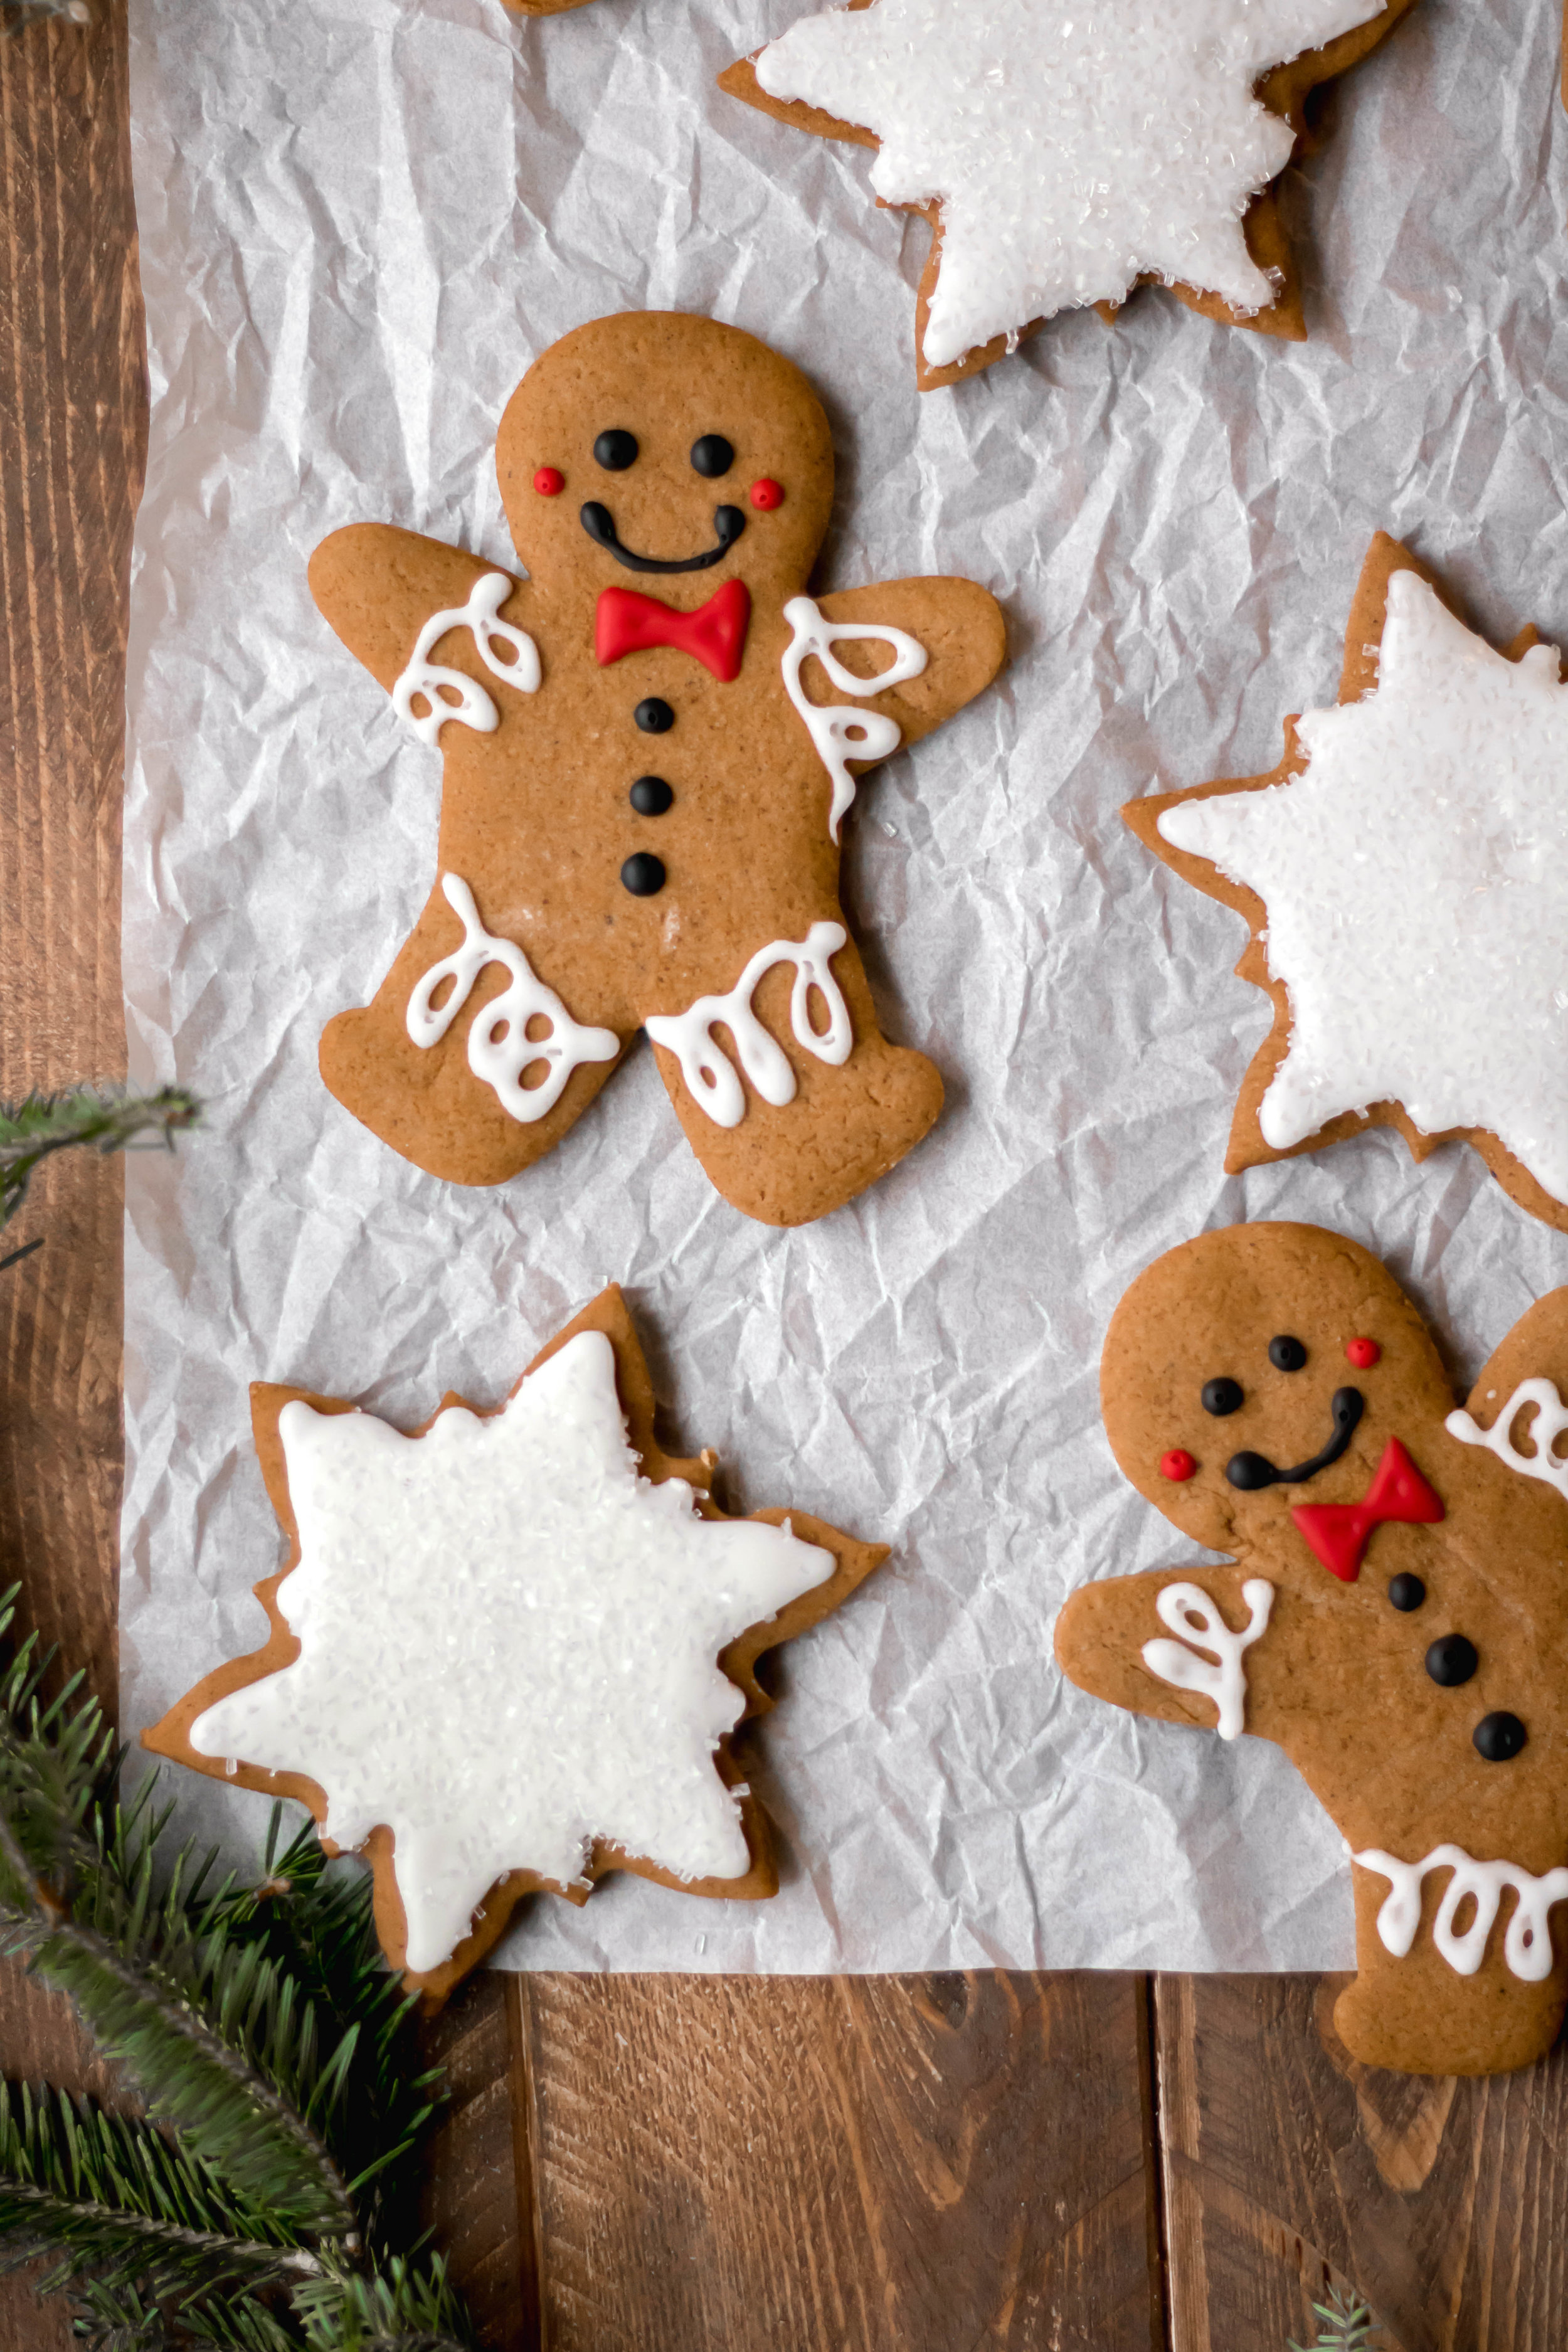 gingerbread cookies2.jpg